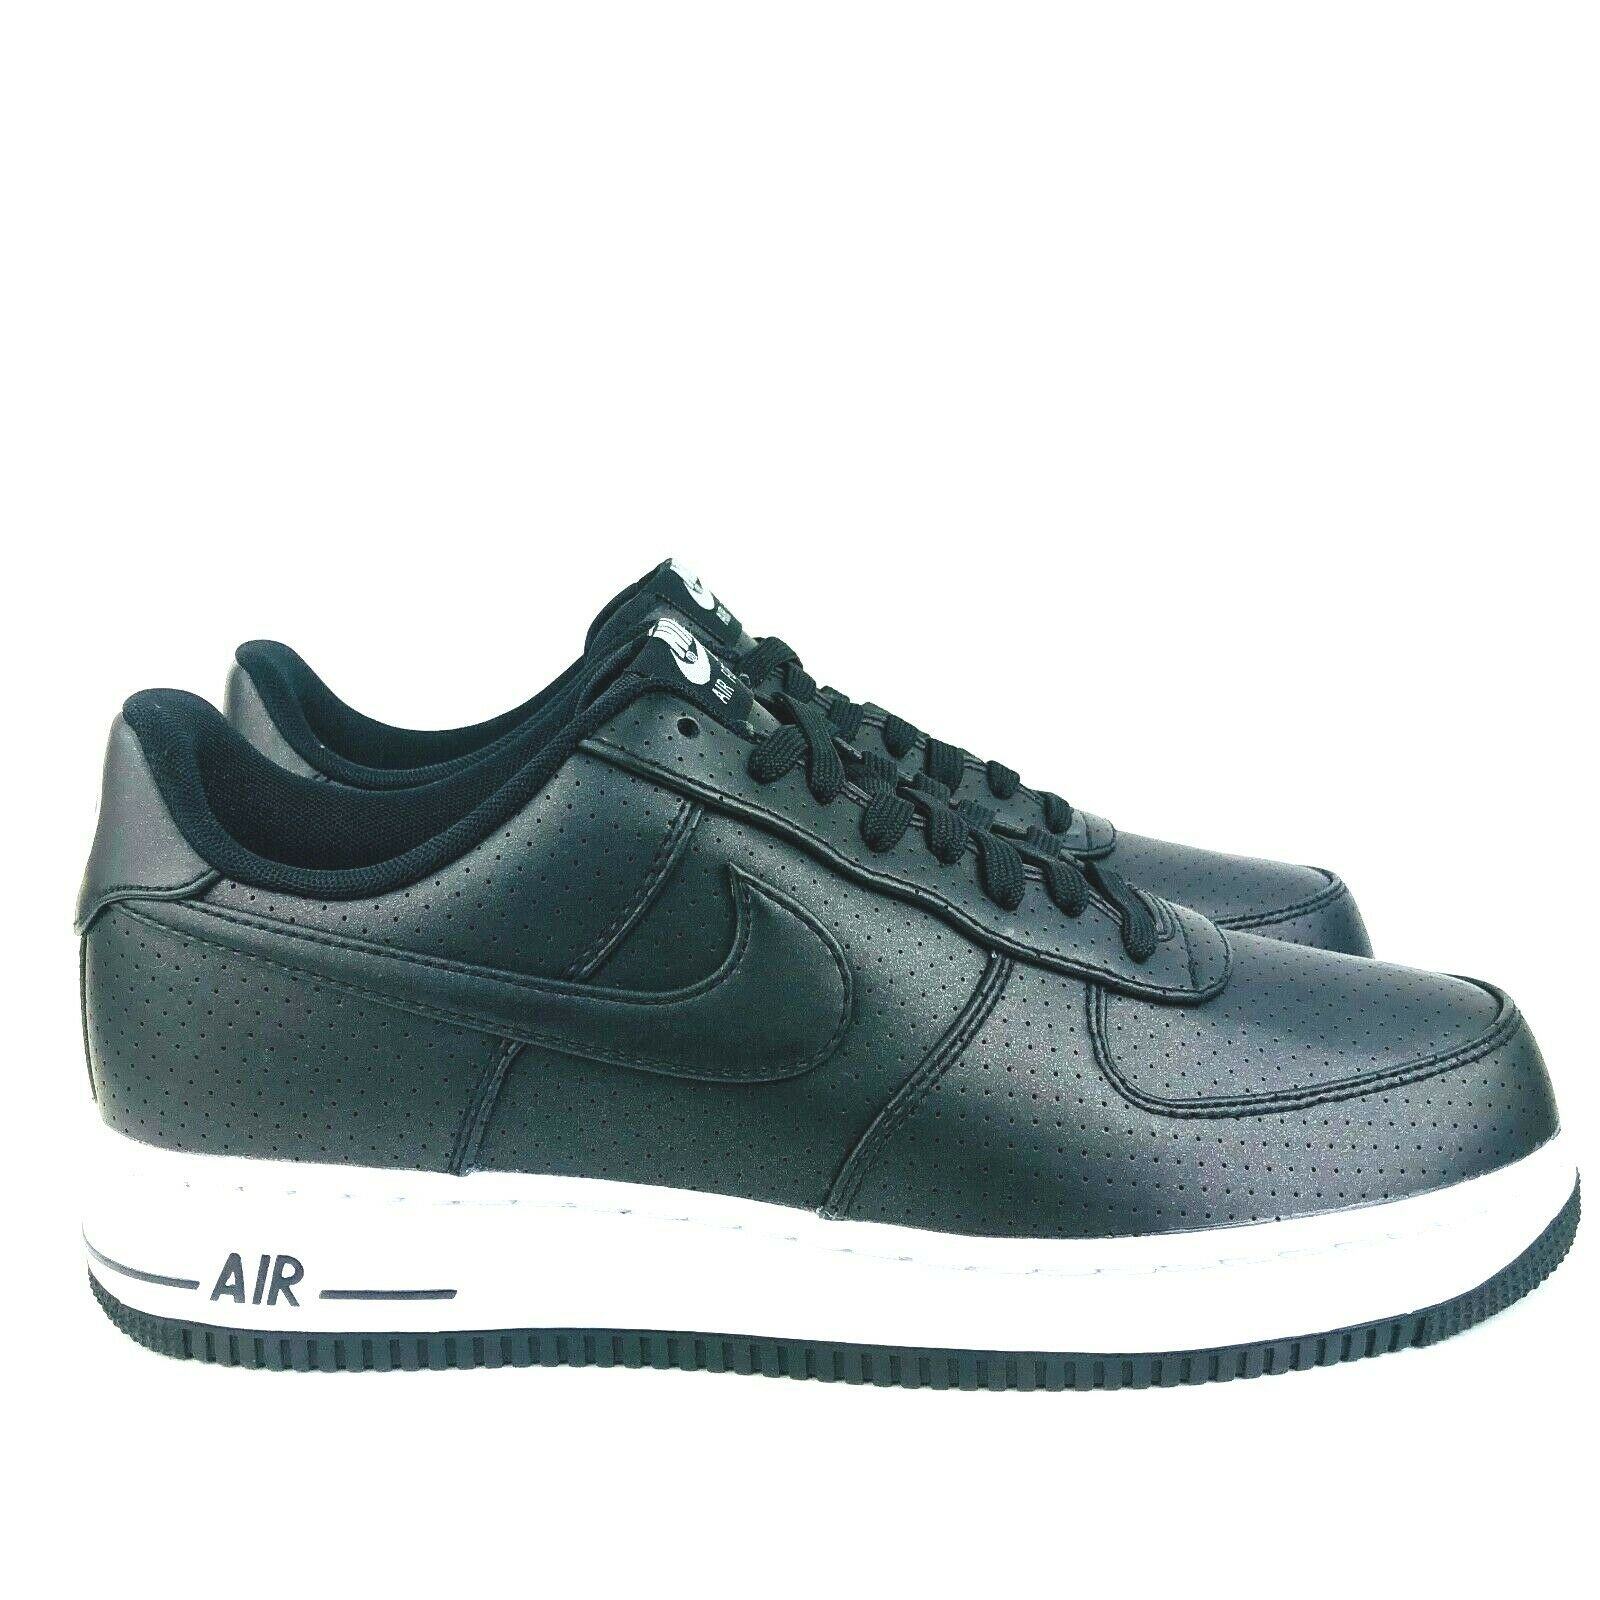 new style 15106 5731c Nike Air Force 1 Low Dream Team Lifestyle Sneakers Black 718152-014 size 10